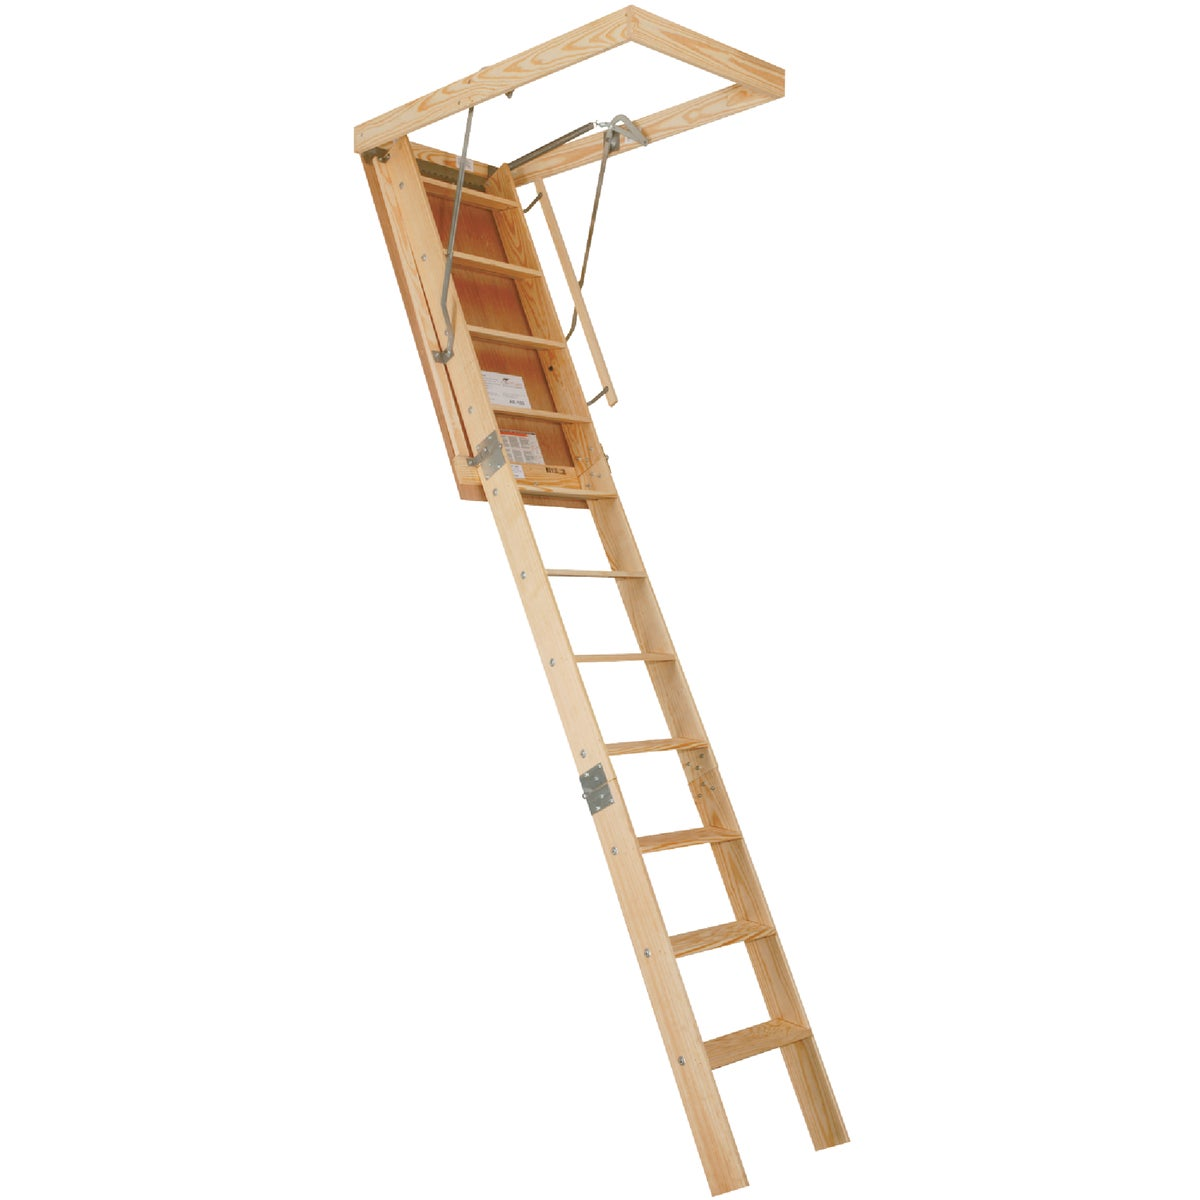 25X120 FIRE ATTIC STAIR - AE100F by Louisville Ladder